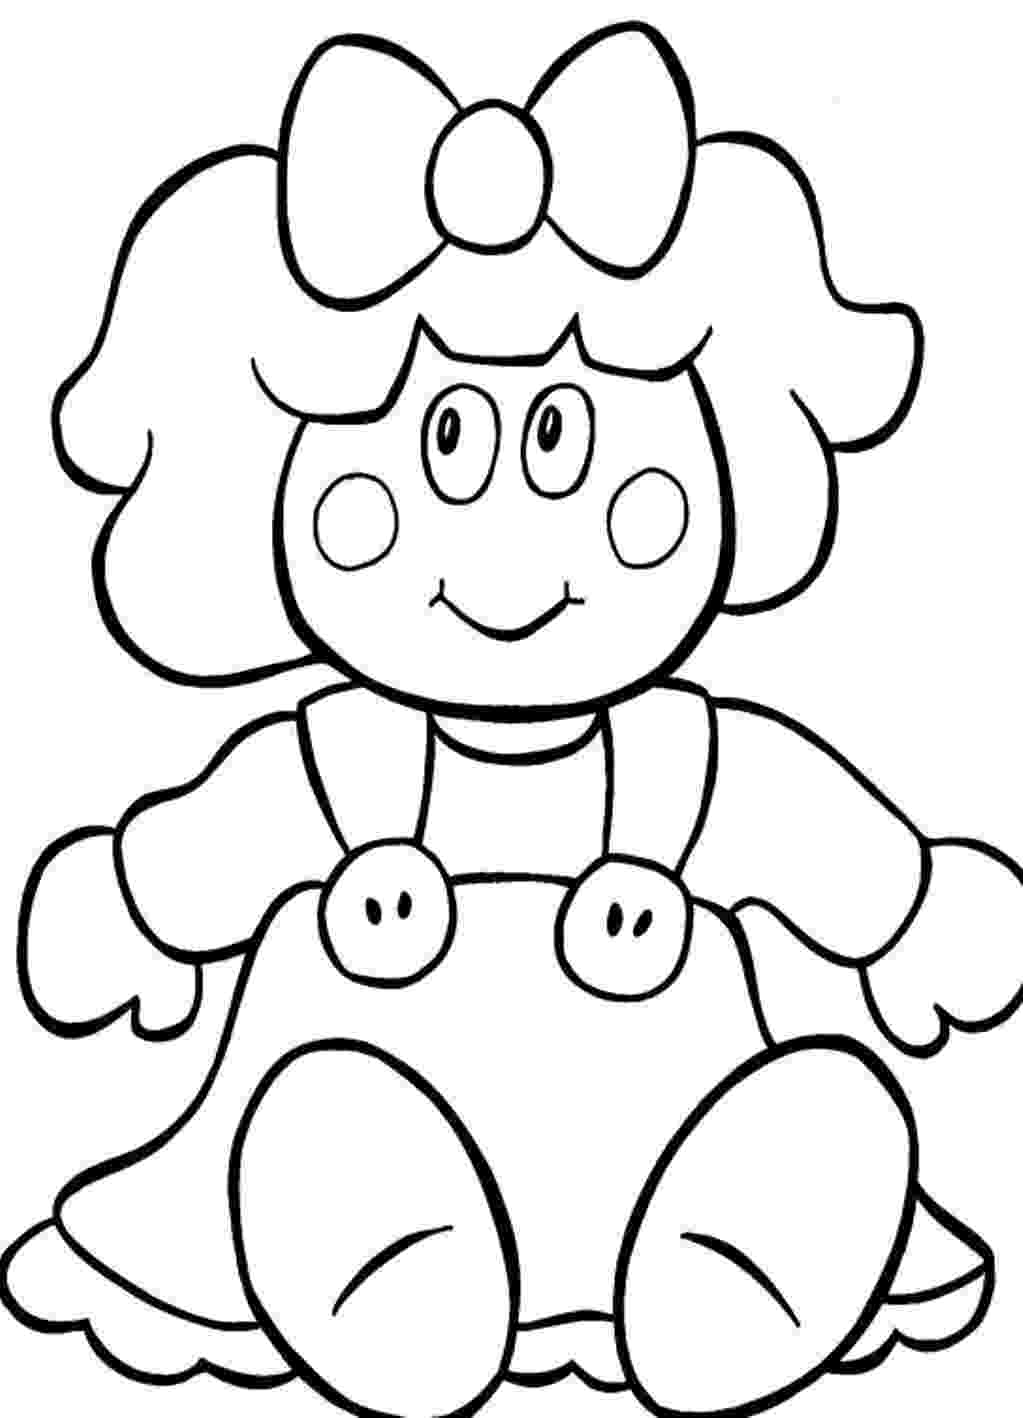 dolls coloring pages 40 free printable lol surprise dolls coloring pages coloring dolls pages